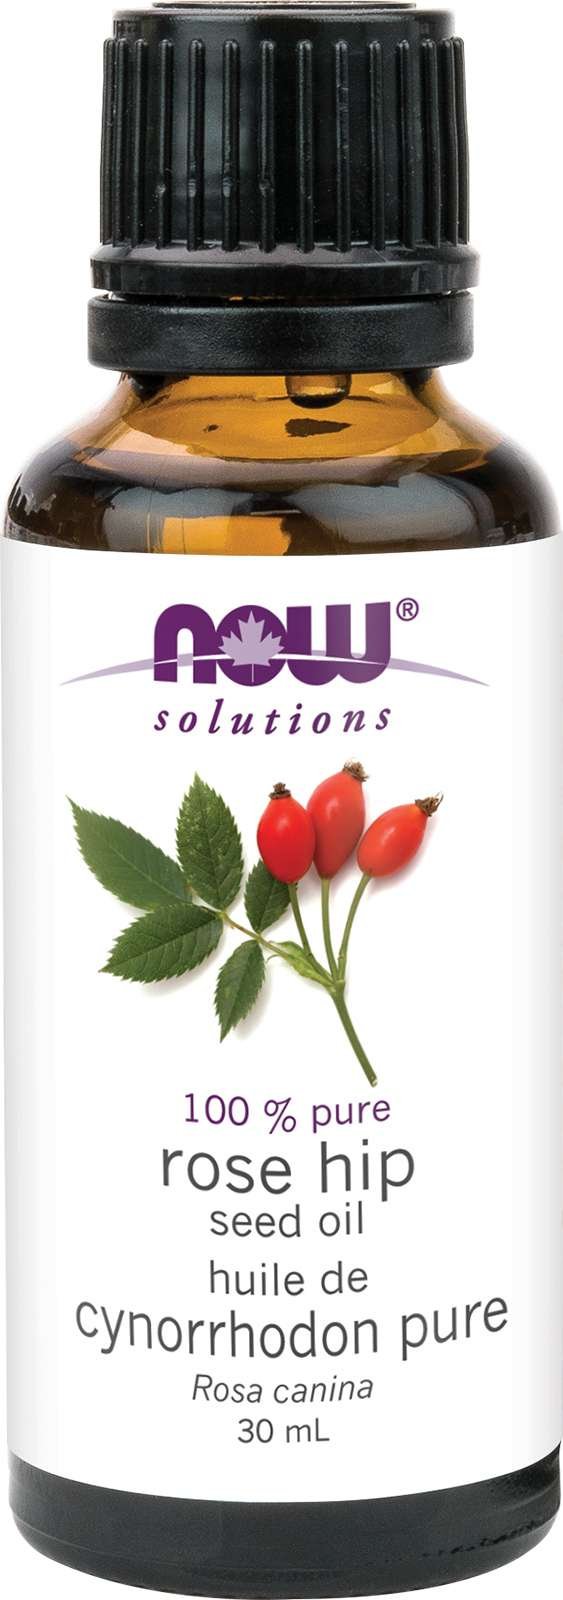 Rose Hip Seed Oil 30mL